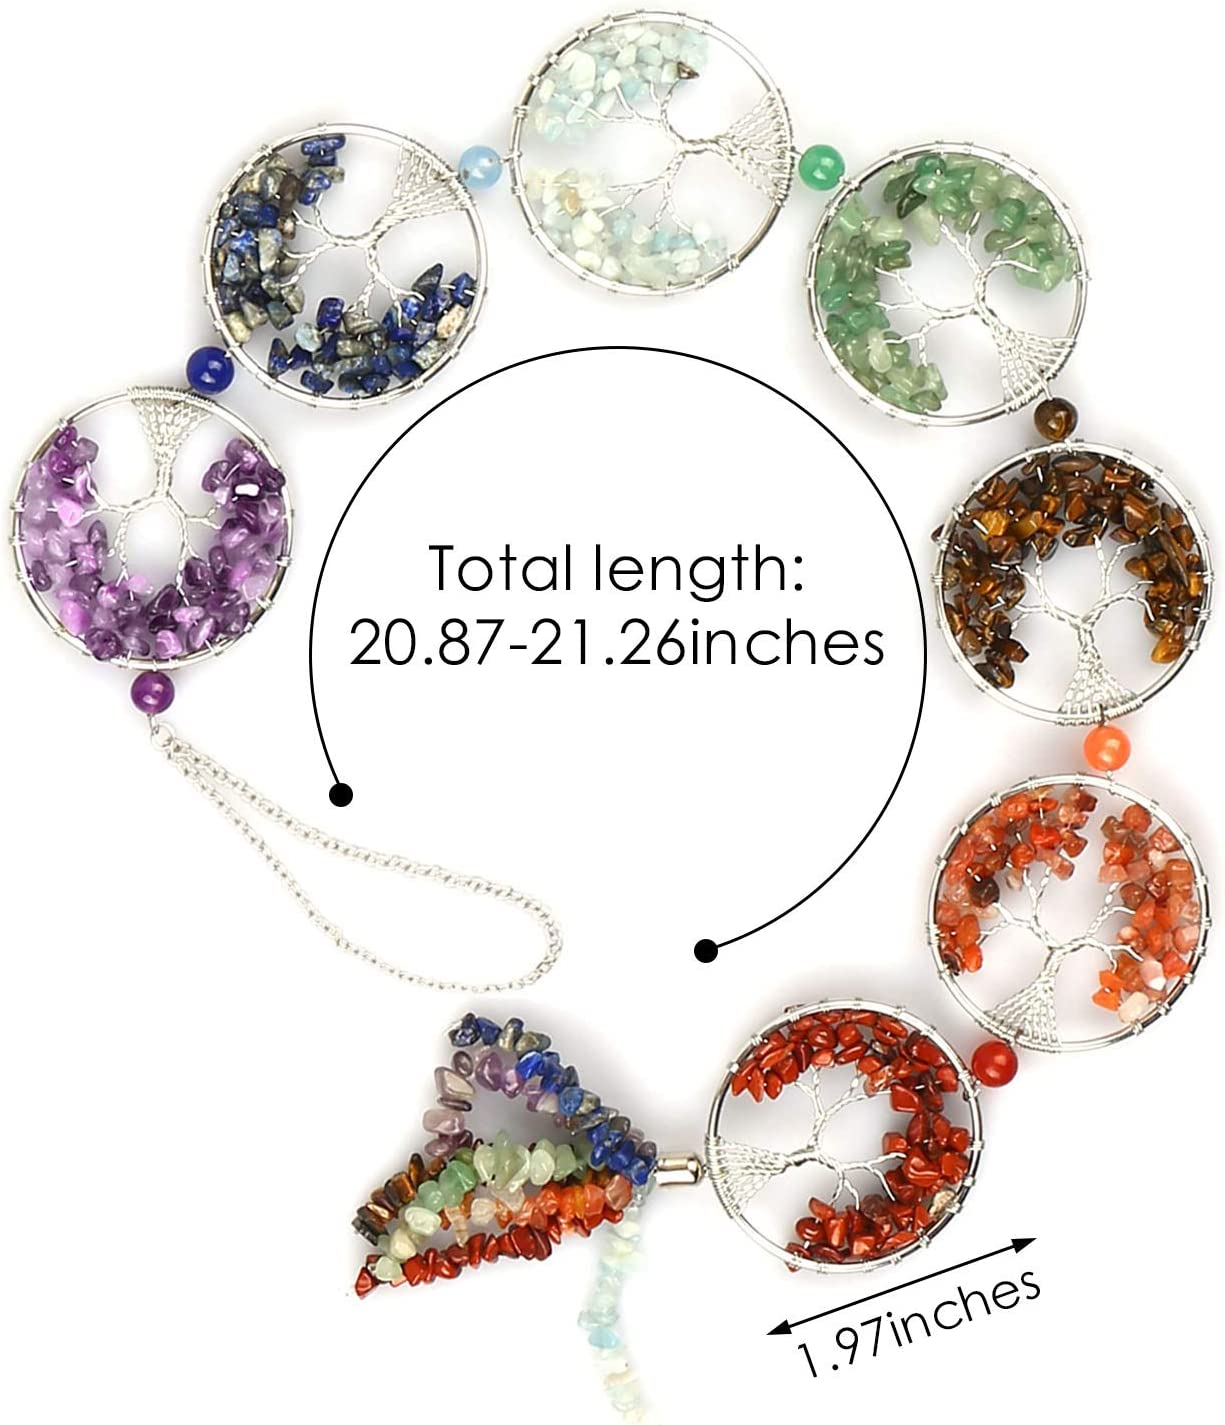 Tumbled Chips Tassel Yoga Meditation Protection Home Wall Decoration for Good Luck Silver WingFly 7 Chakra Stones Reiki Healing Crystals Tree of Life Natural Gemstones Hanging Ornament